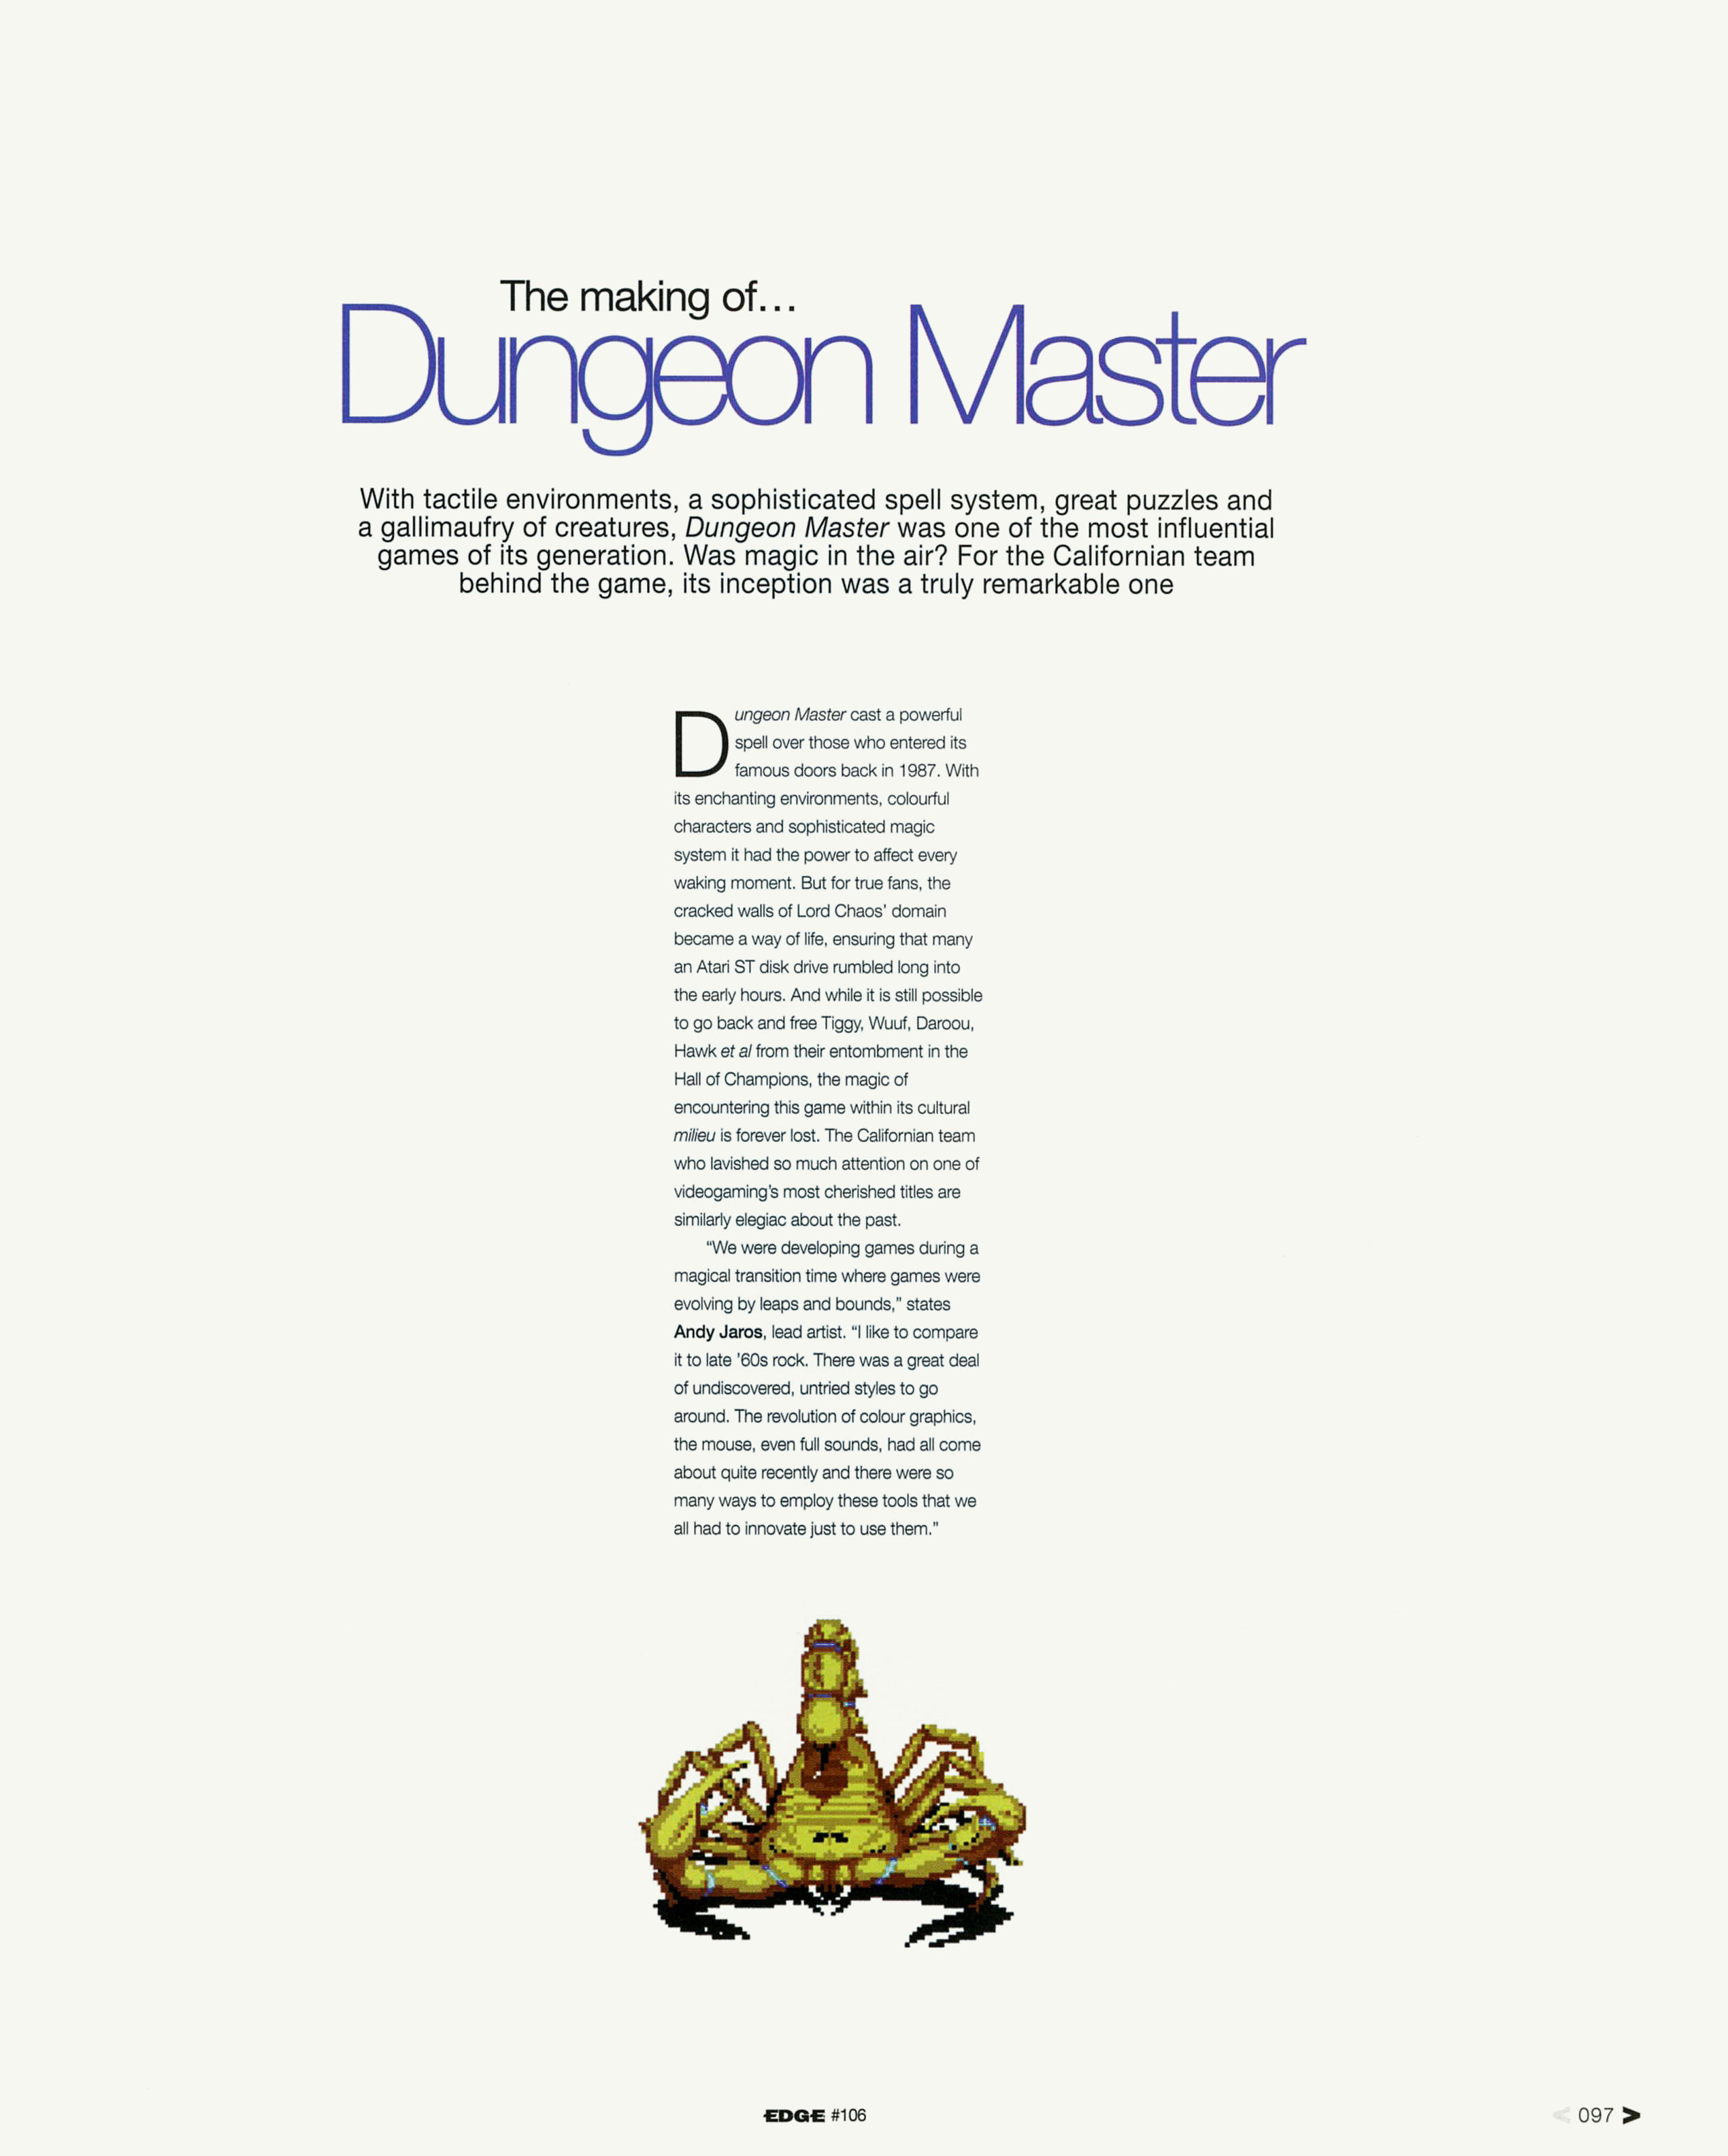 Dungeon Master Game Series Article published in British magazine 'Edge', Issue #106 January 2002, Page 97